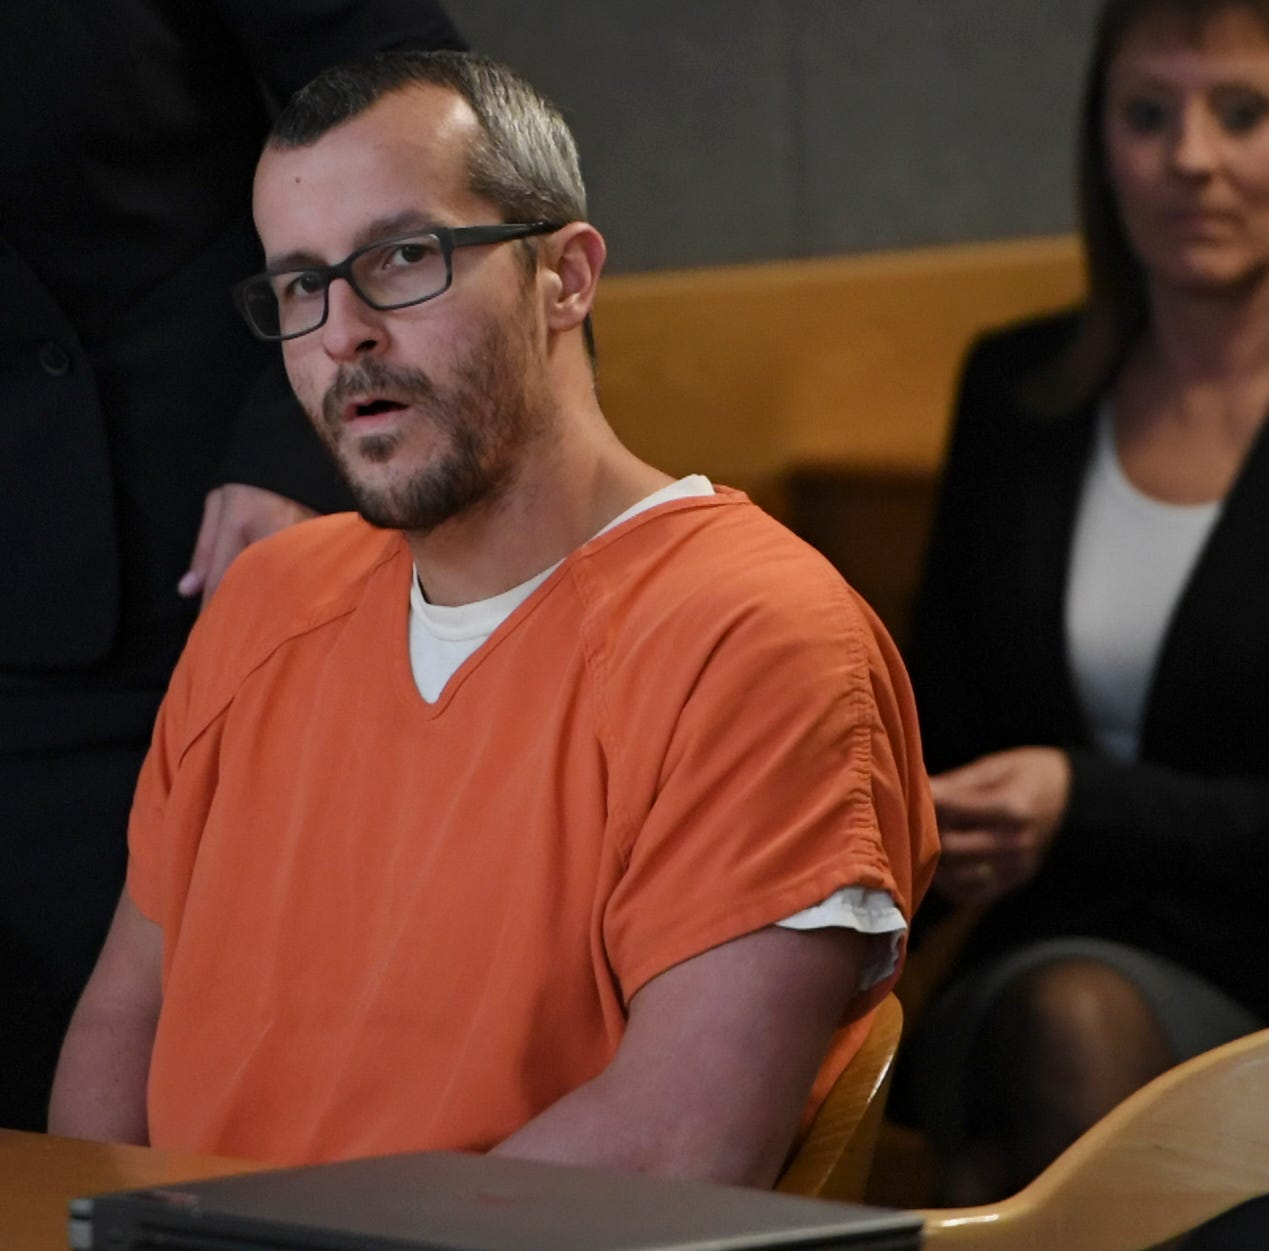 Lawyer details reported Chris Watts confession on Dr. Phil: What we know